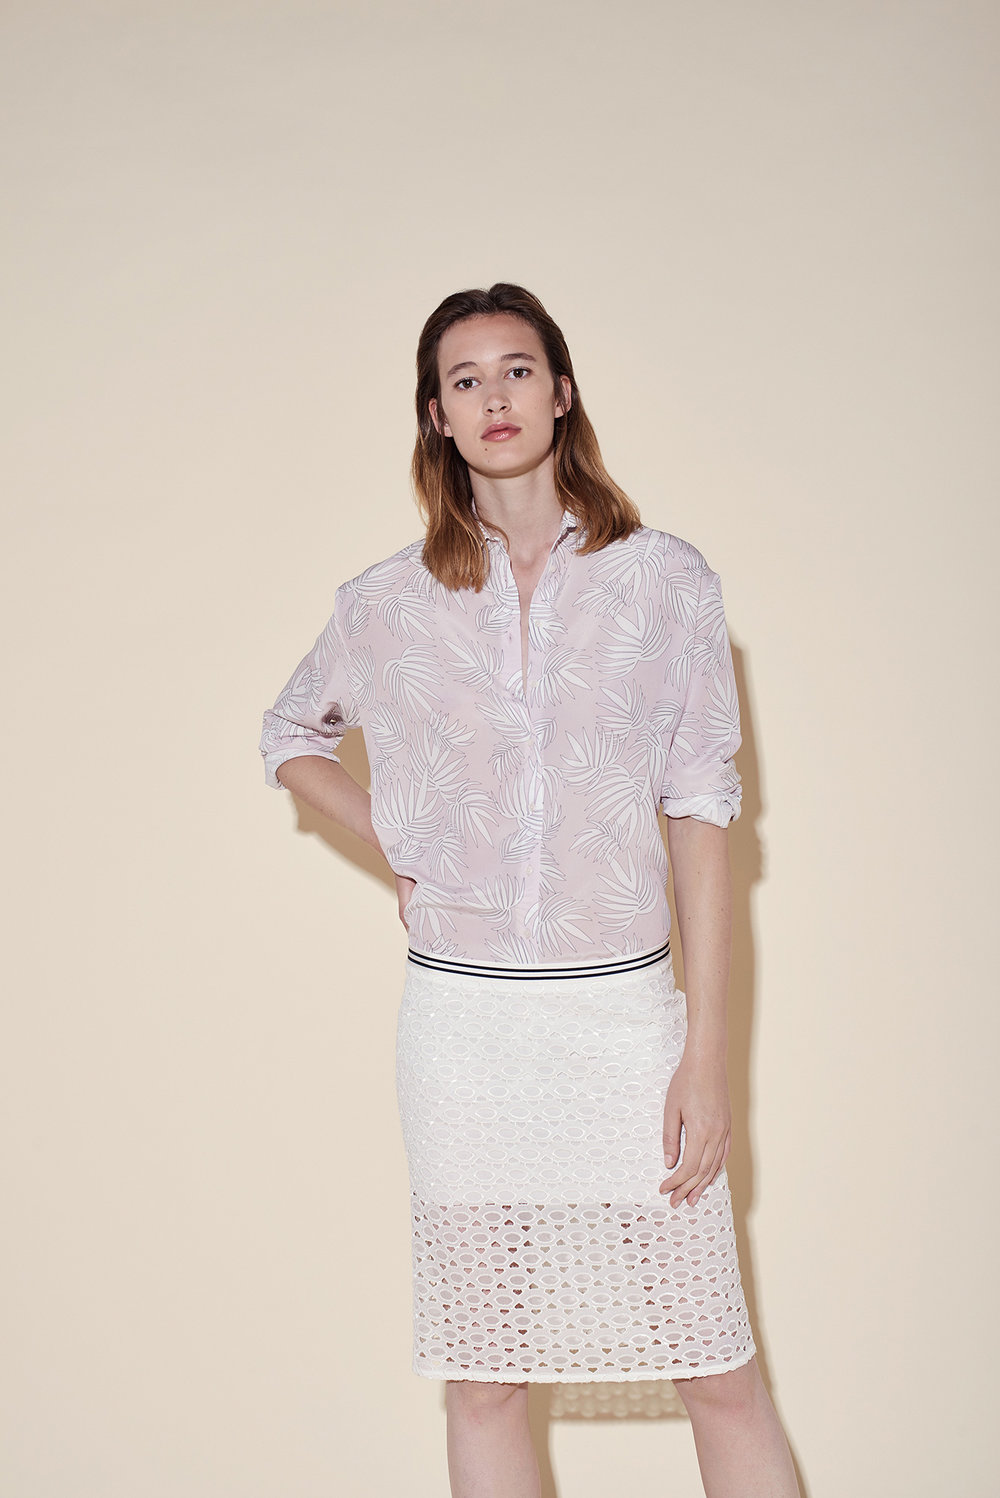 Man shirt silk crepe tropical pink – straight cut skirt silk broderie white